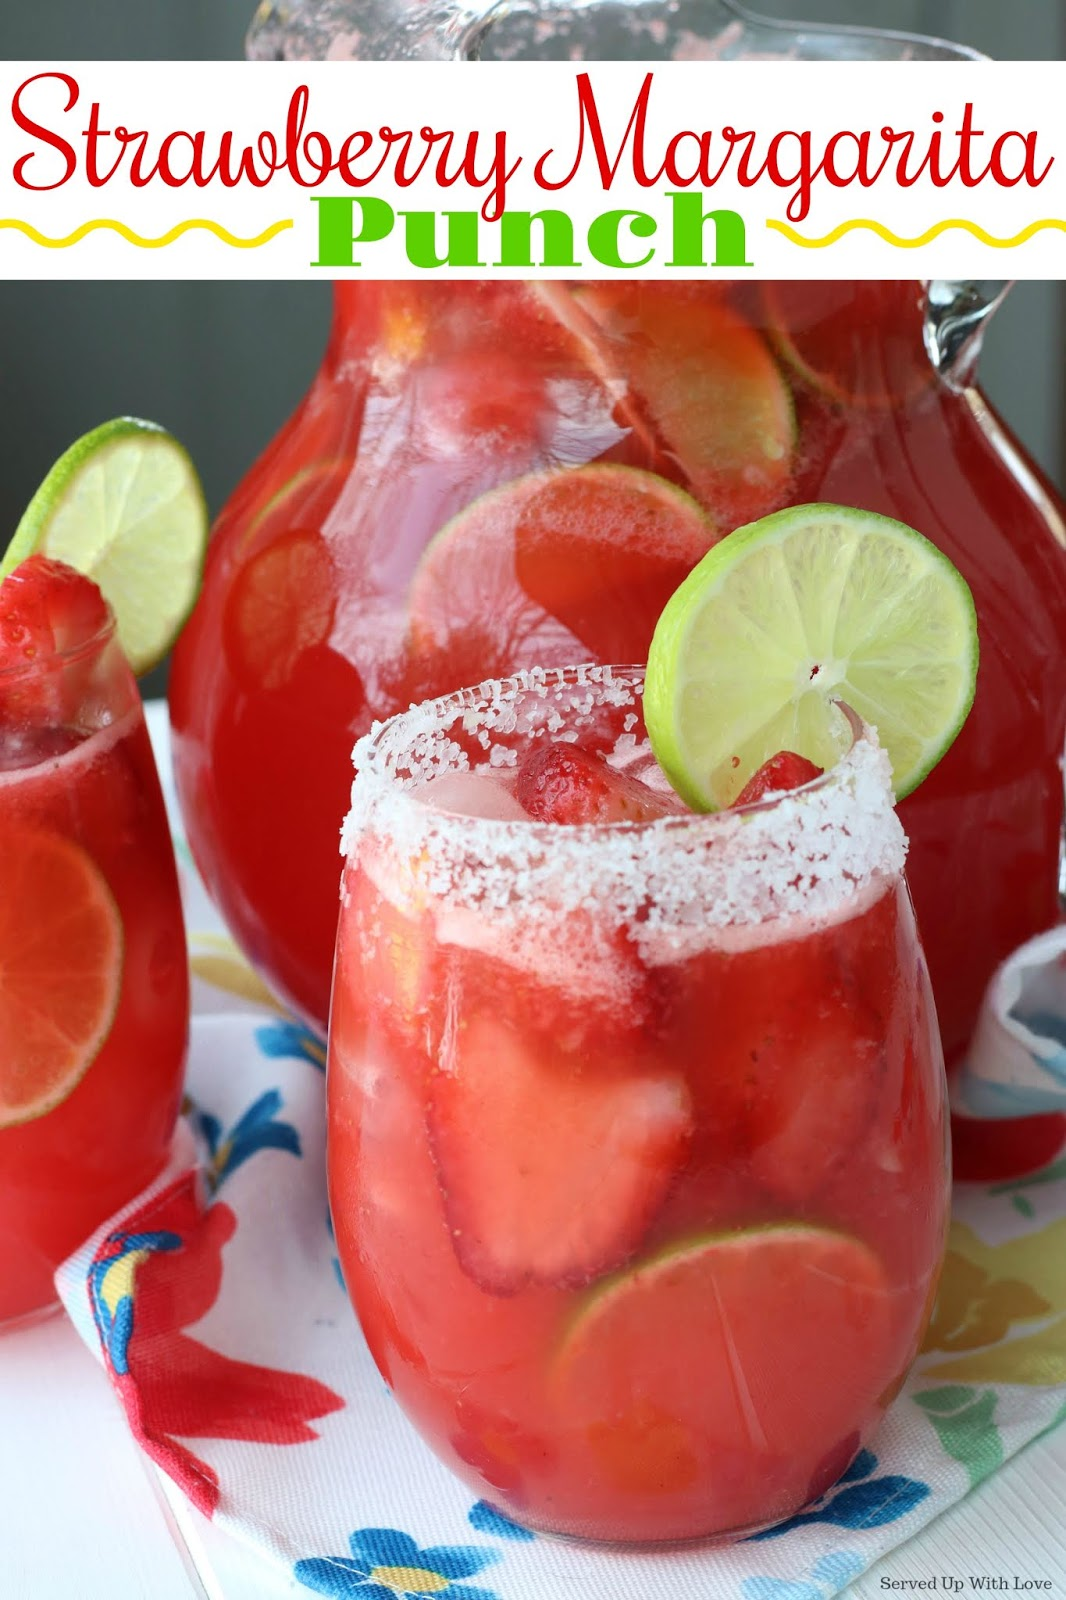 Served Up With Love Strawberry Margarita Punch